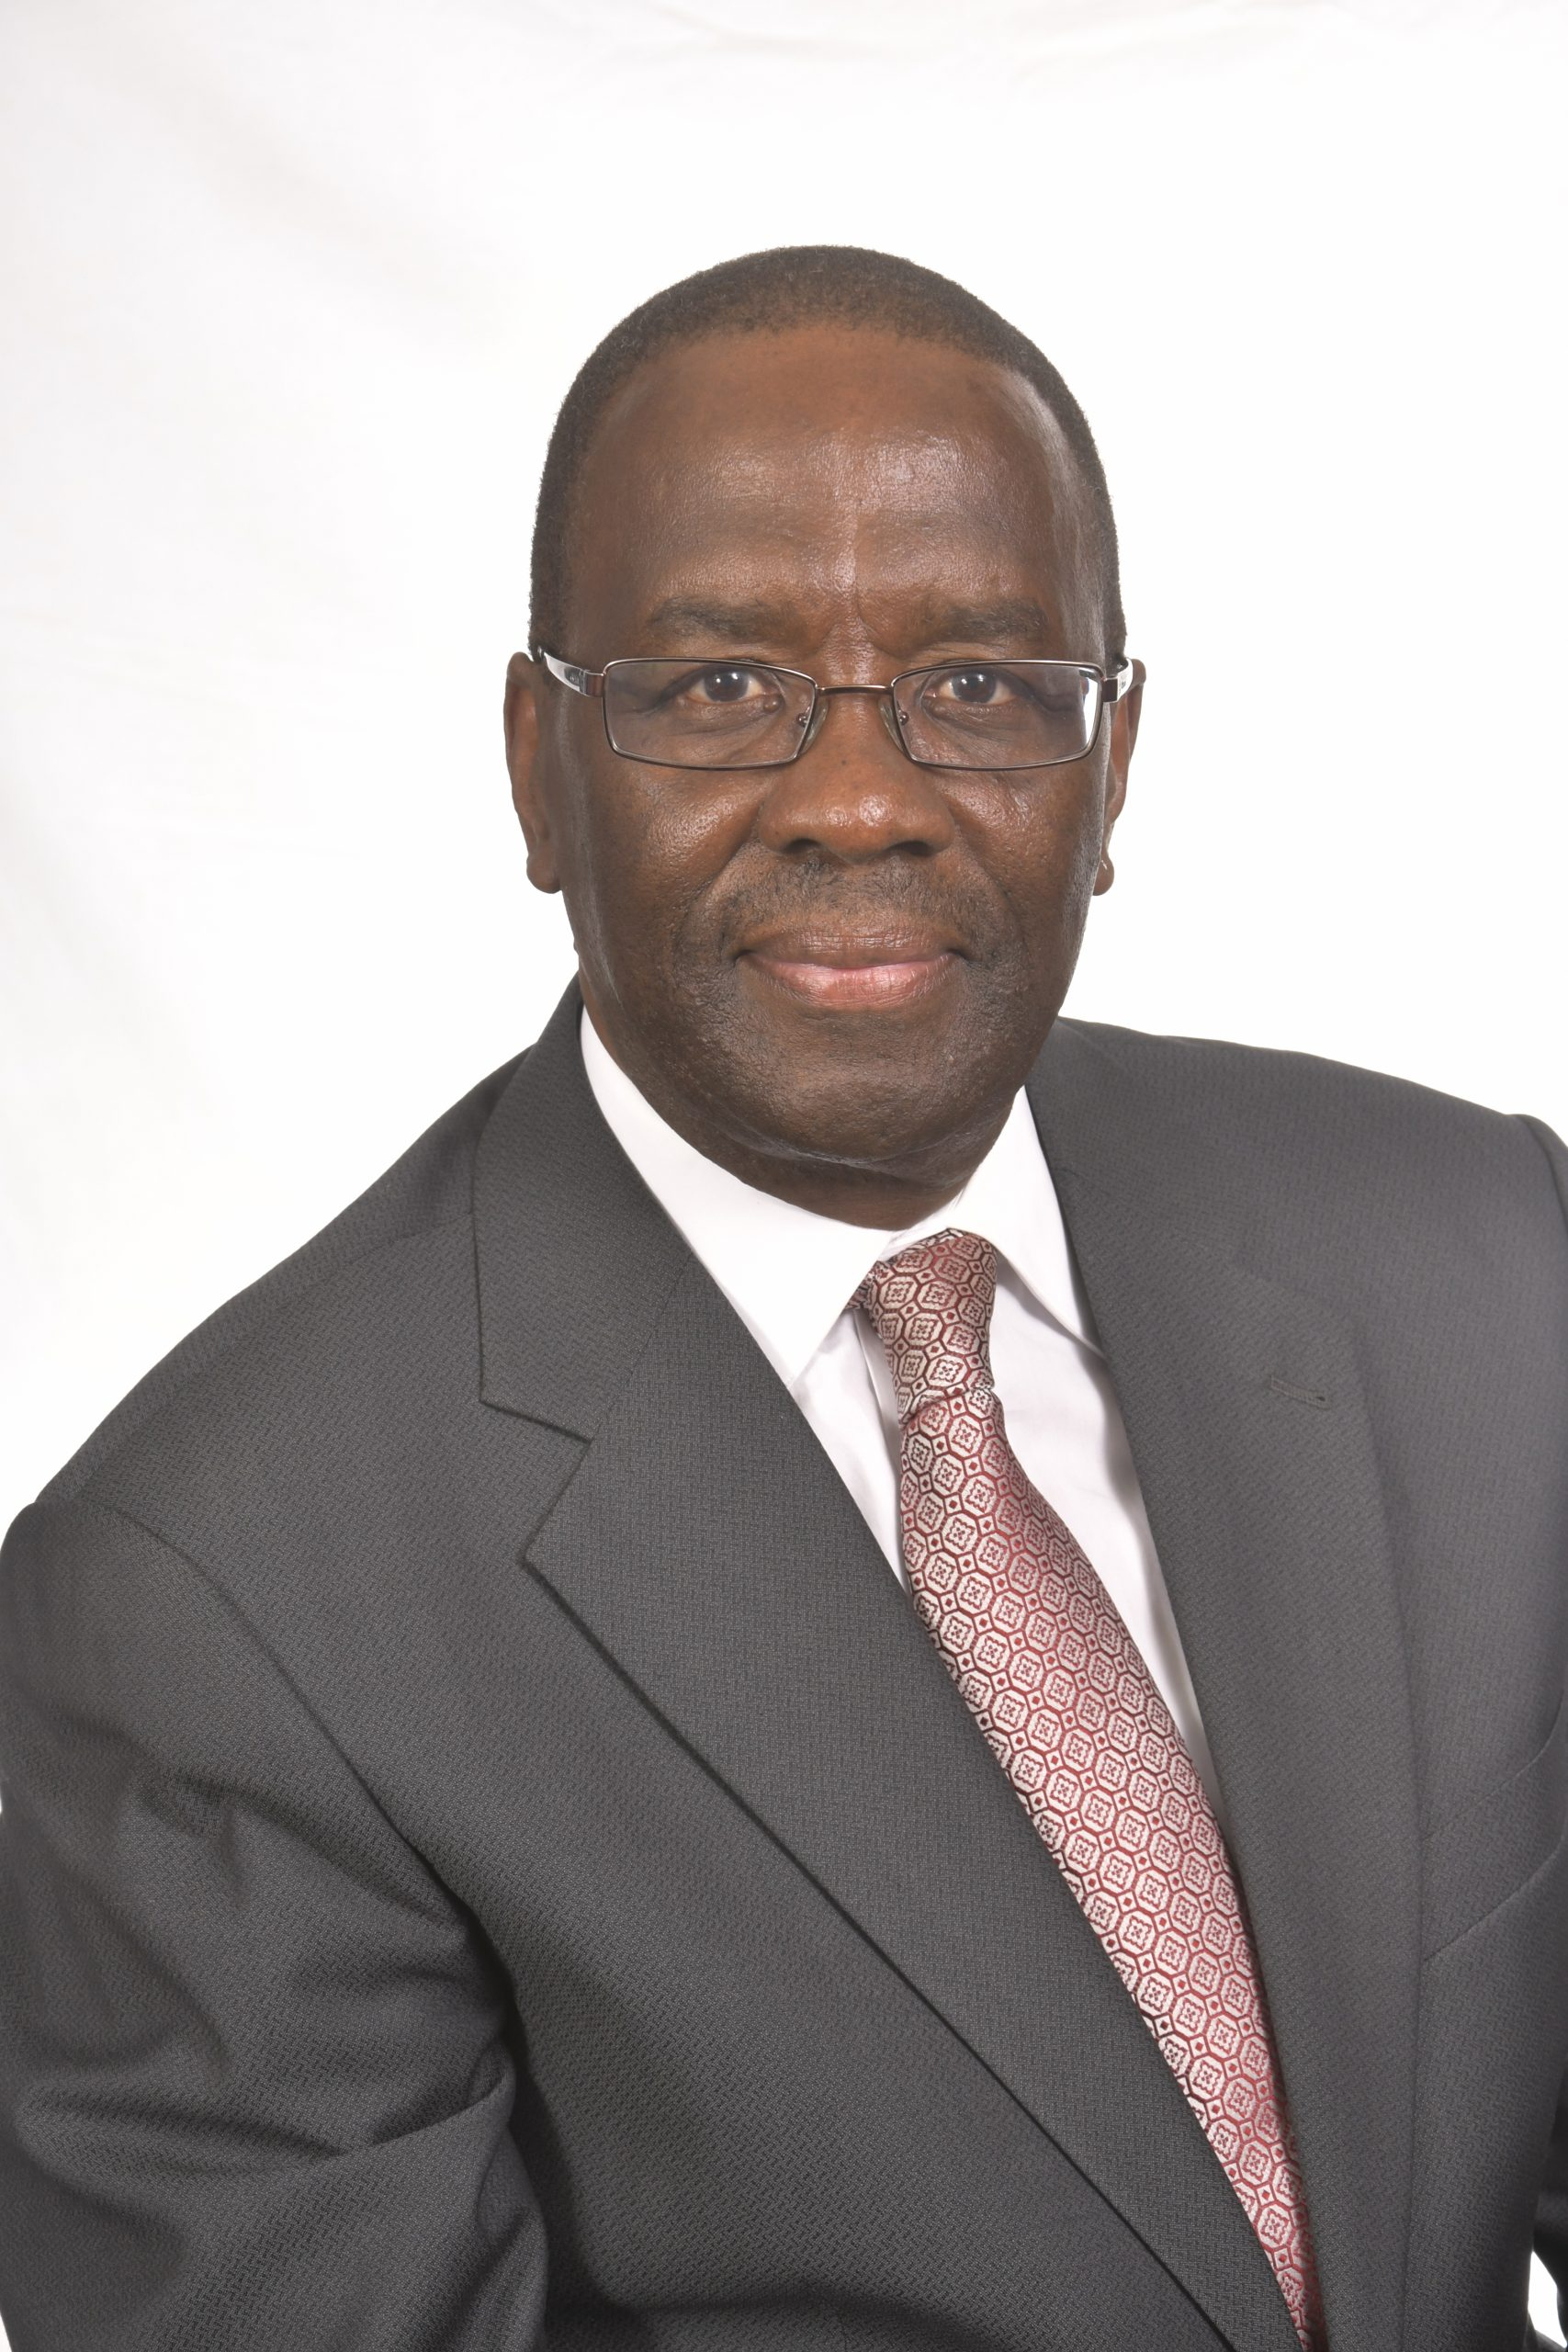 Former Chief Justice of Kenya speaks about Covid-19 and justice